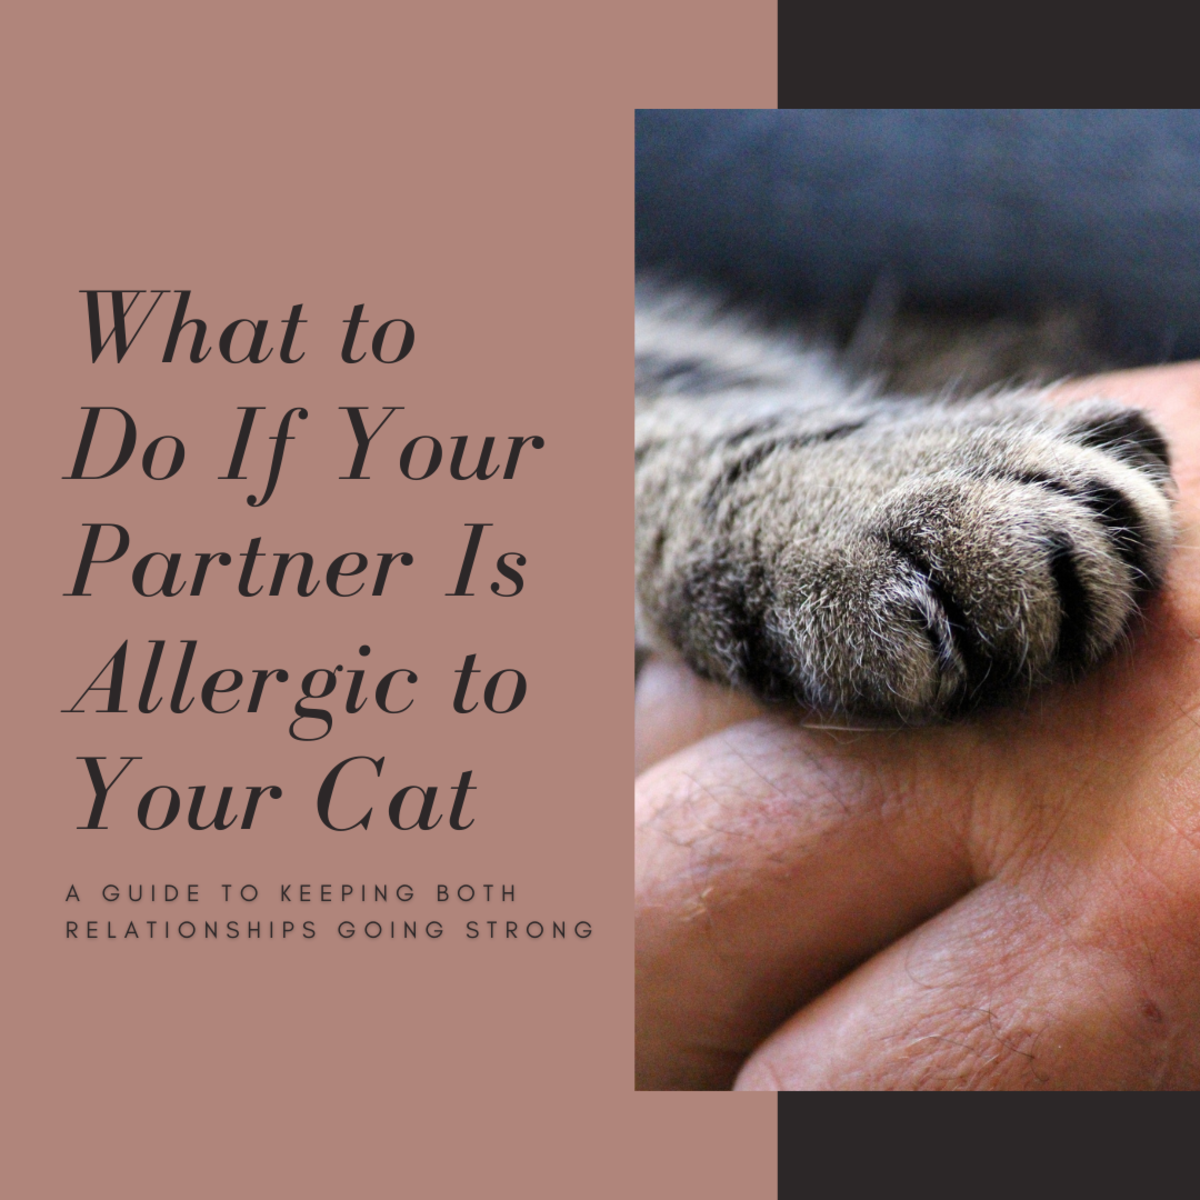 This guide will help you figure out how to keep your relationship with both your partner and your cat going strong, even when one is allergic to the other.